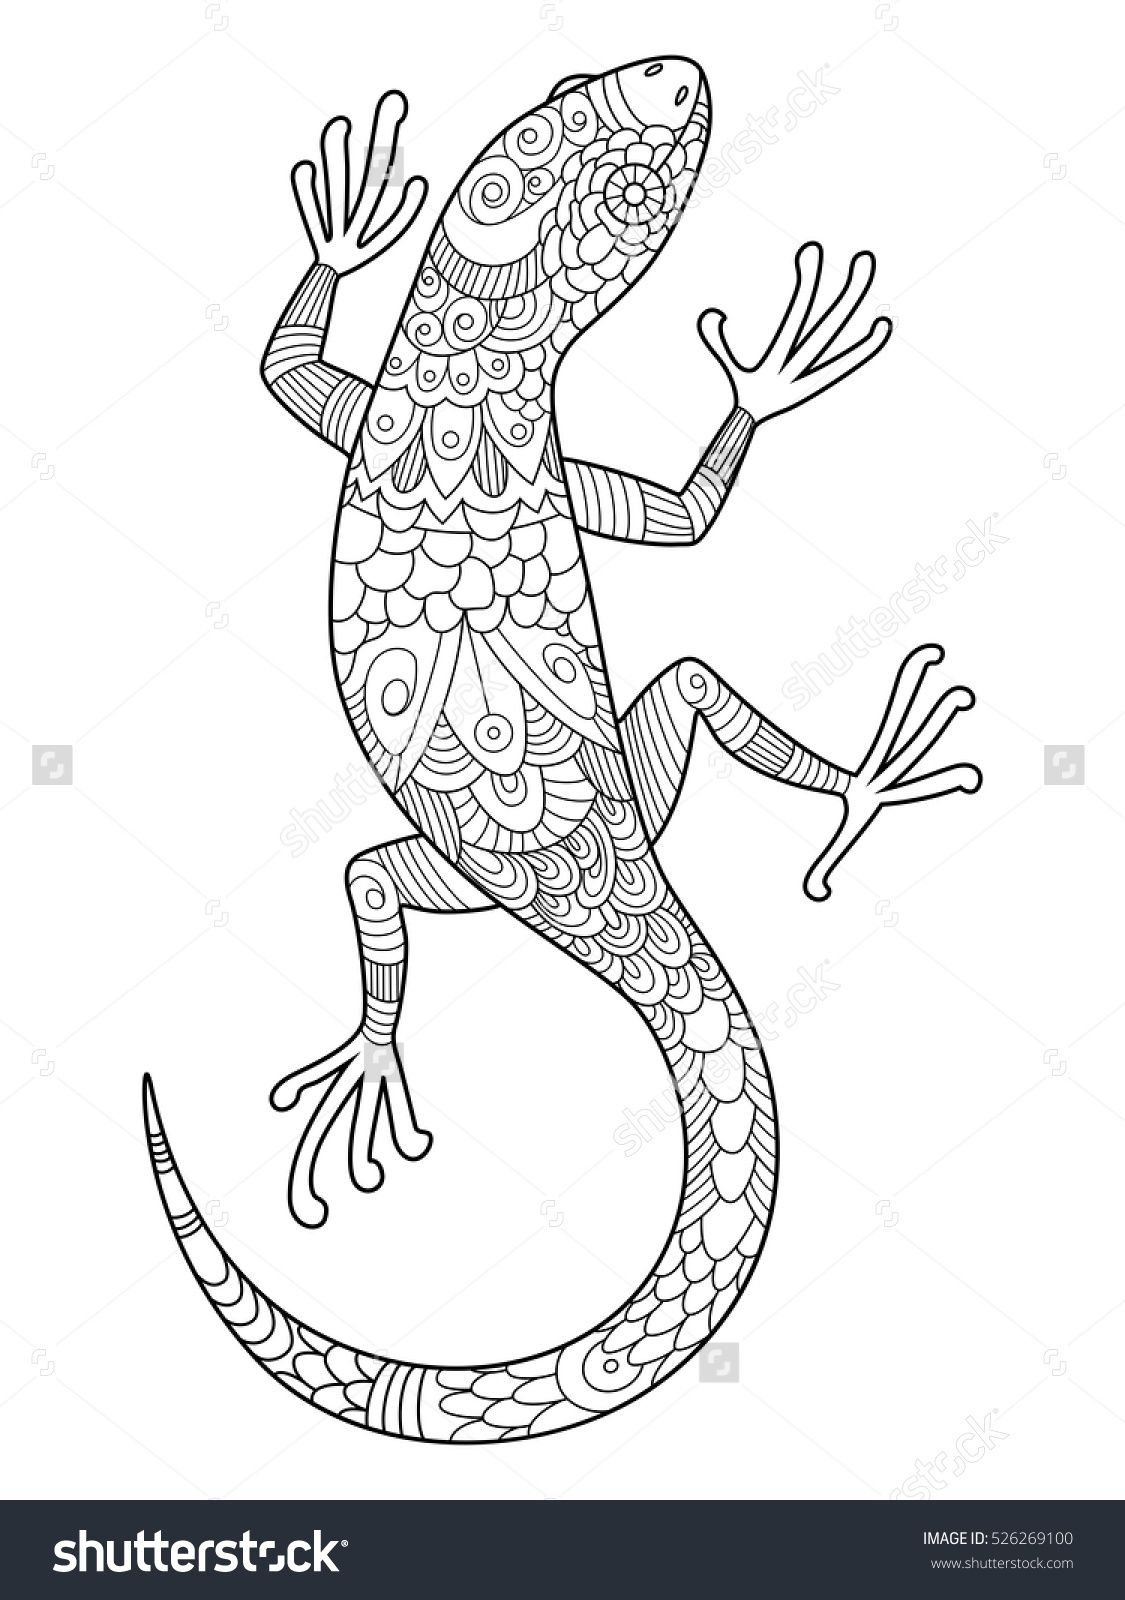 Lizard Coloring Book For Adults Vector Illustration. Anti-Stress ...